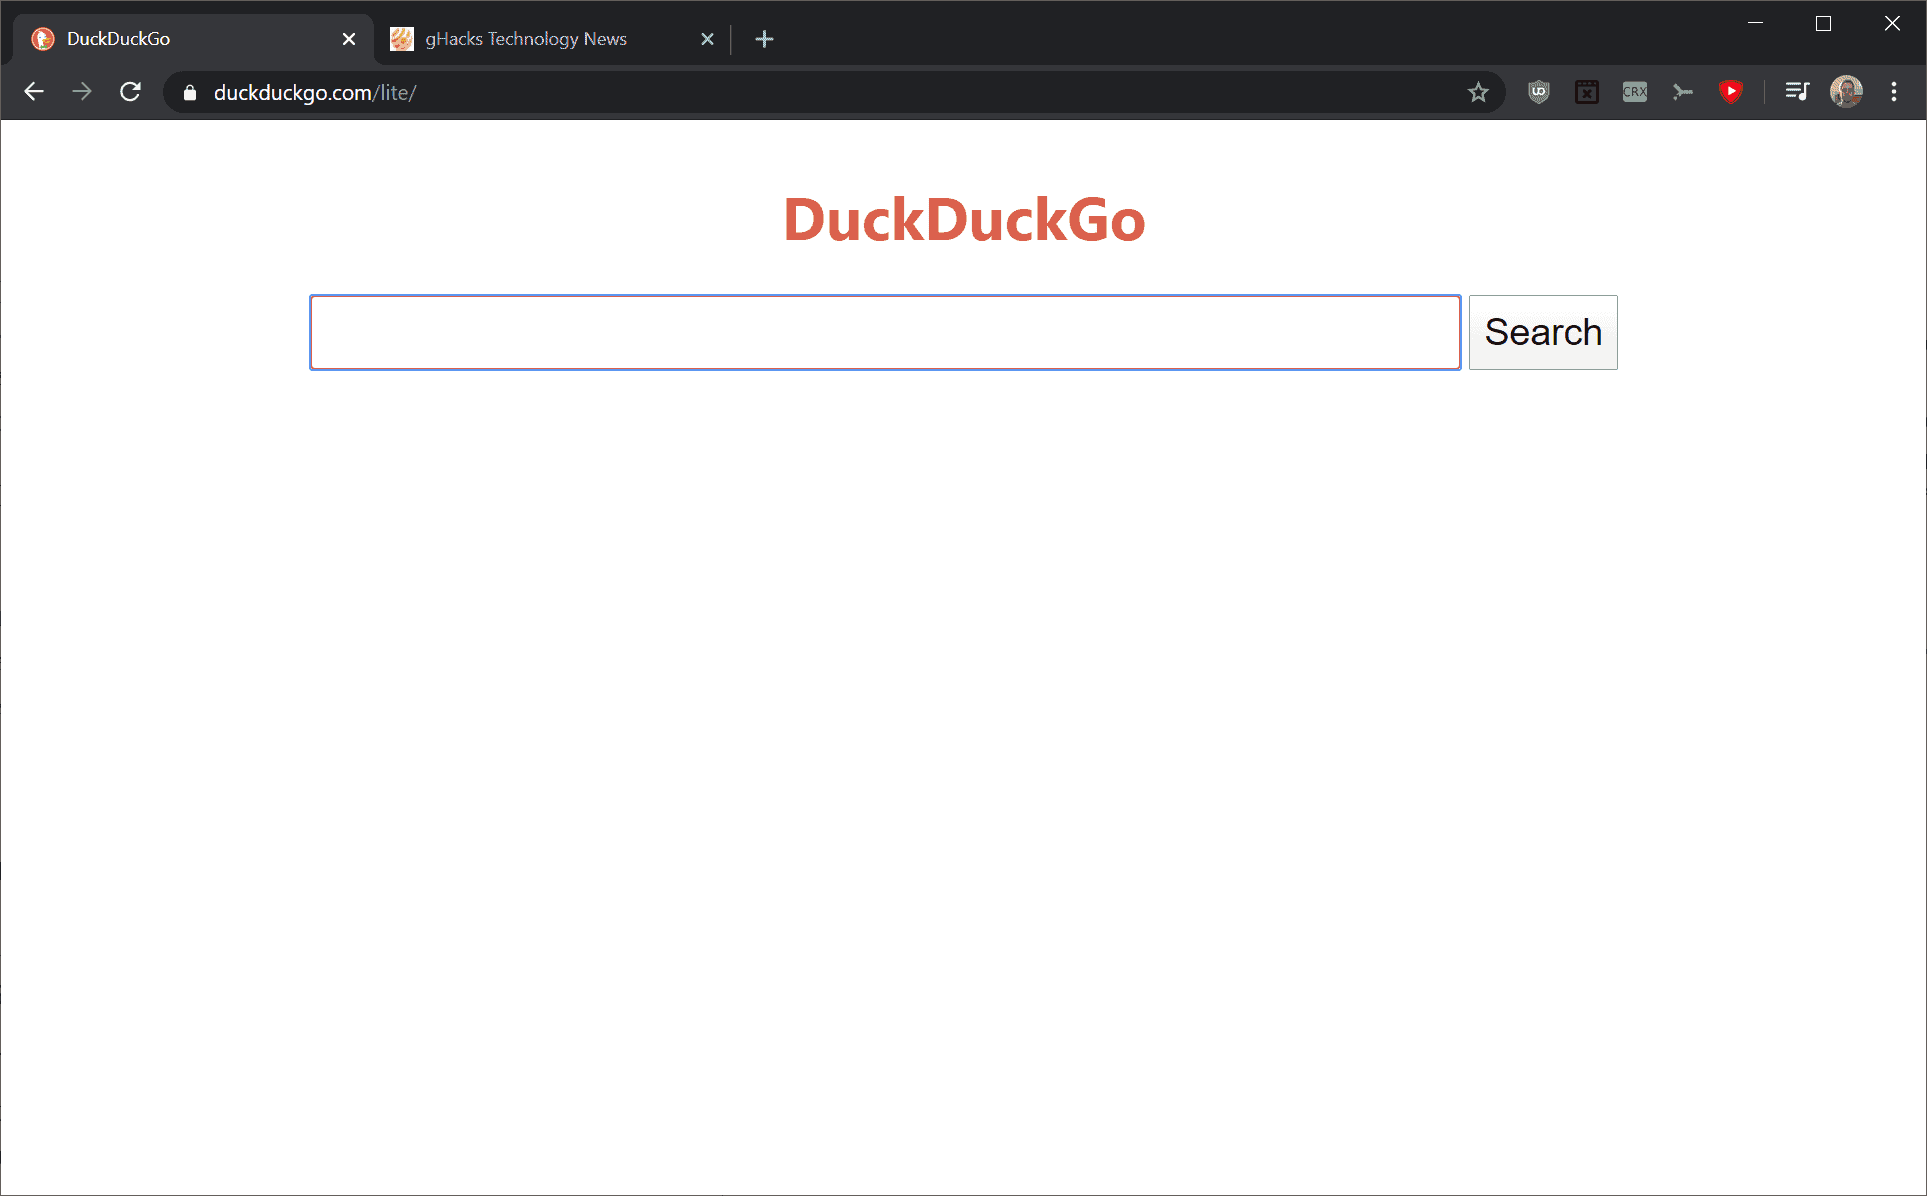 DuckDuckGo Lite: efficient search without ads - Ghacks Technology News